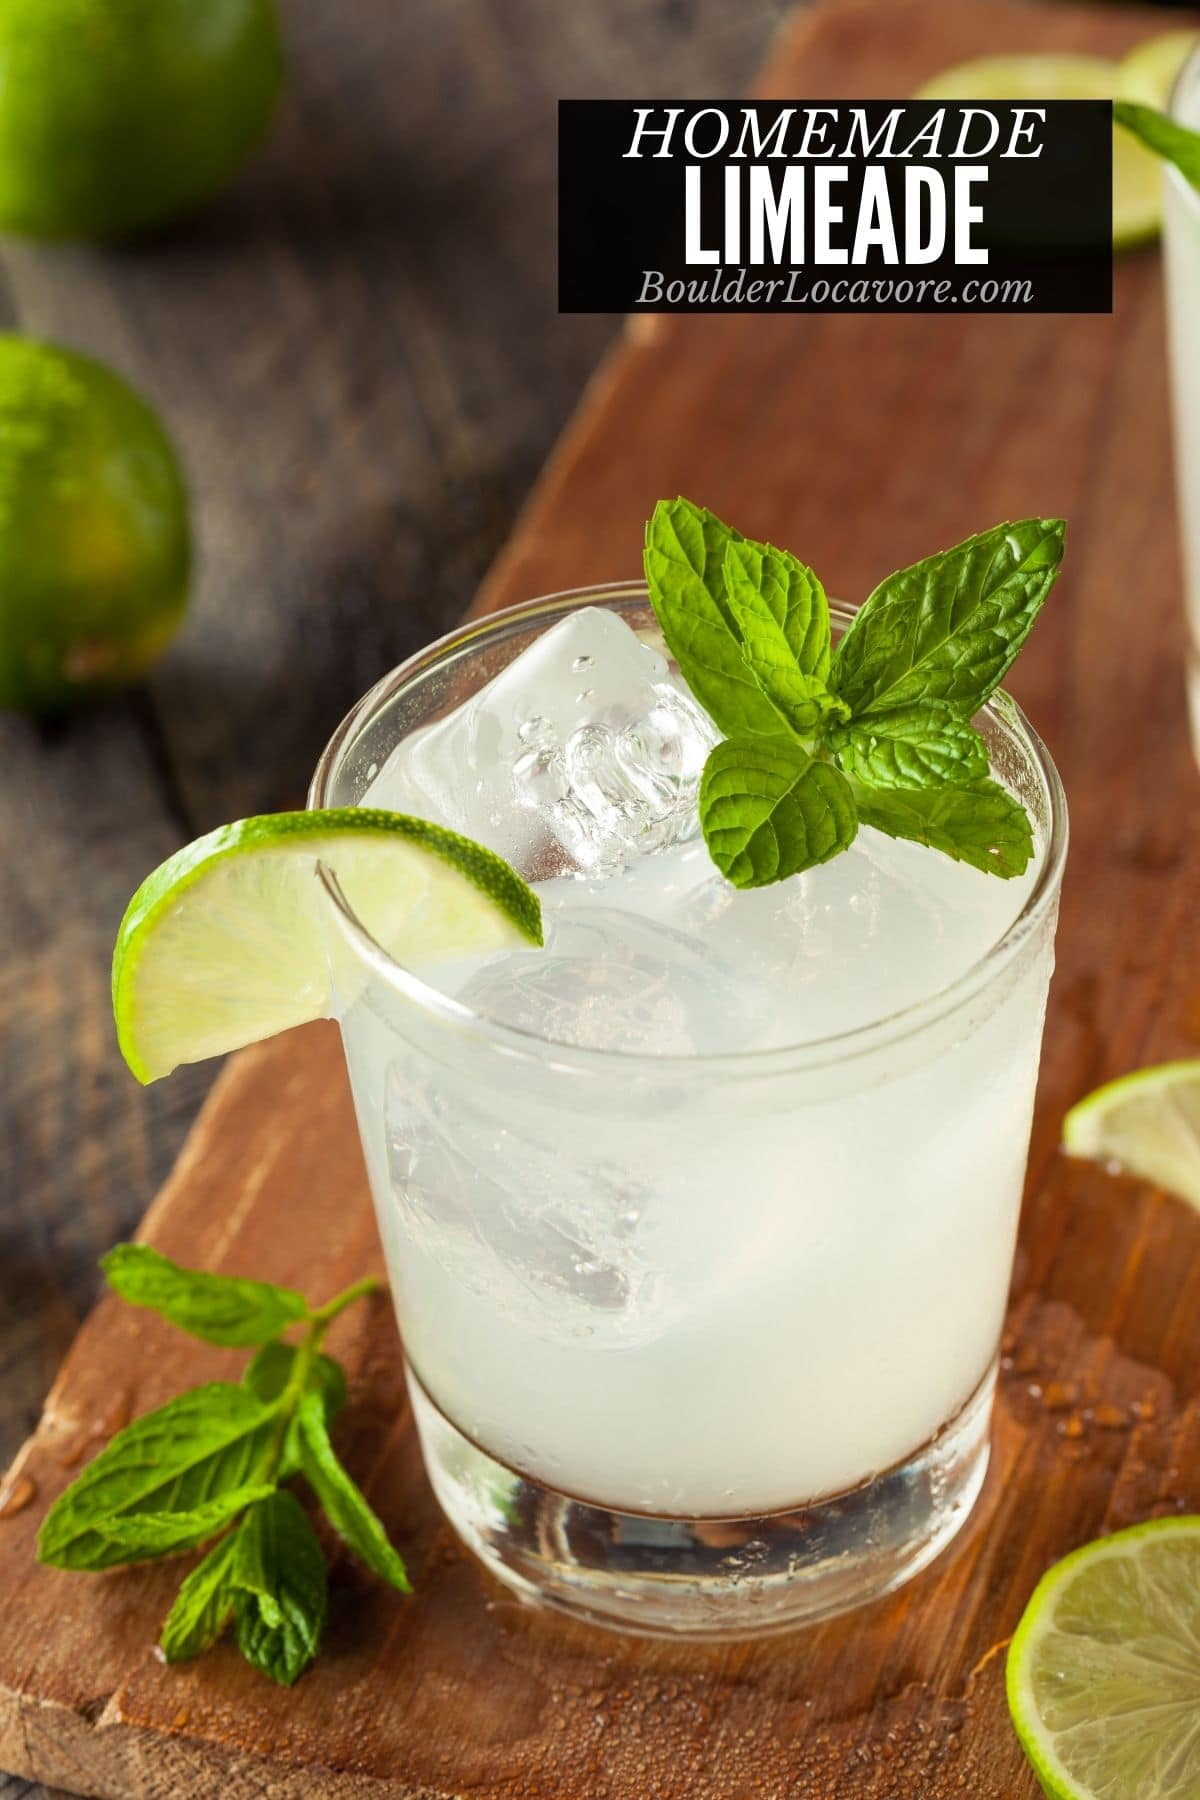 LIMEADE IN A GLASS WITH ICE